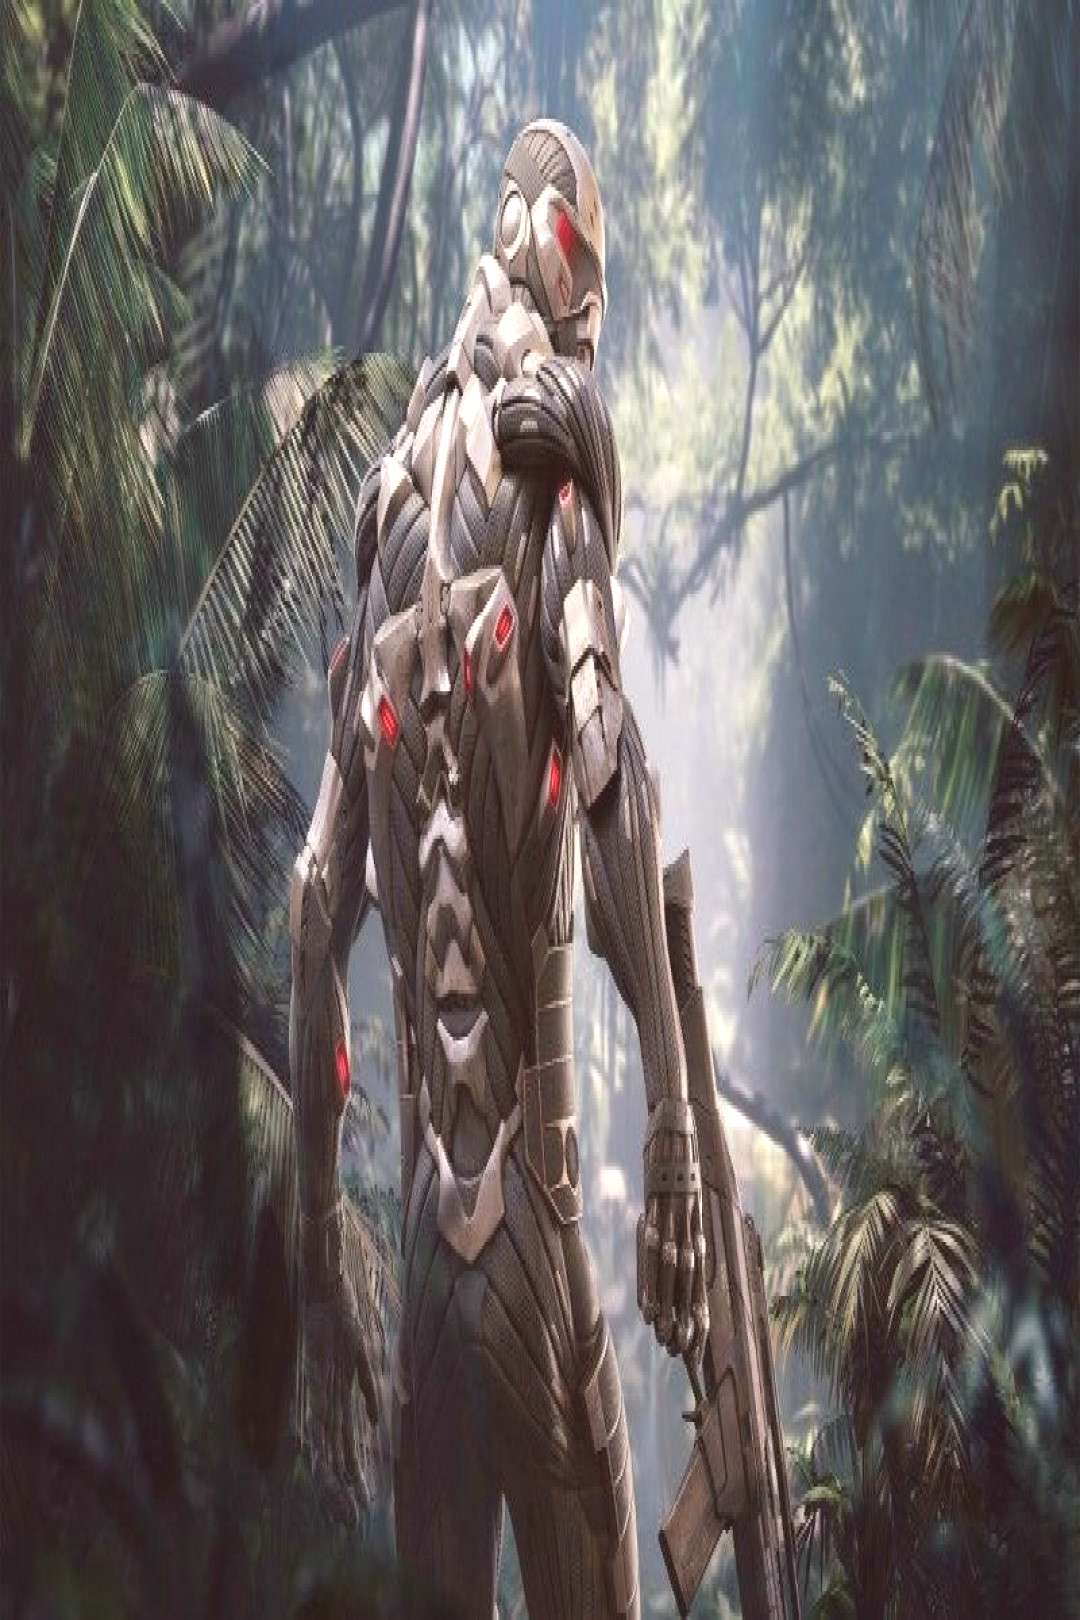 T Crysis Remastered Hitting Consoles And PC This Summer  After going radio-silent for nearly three